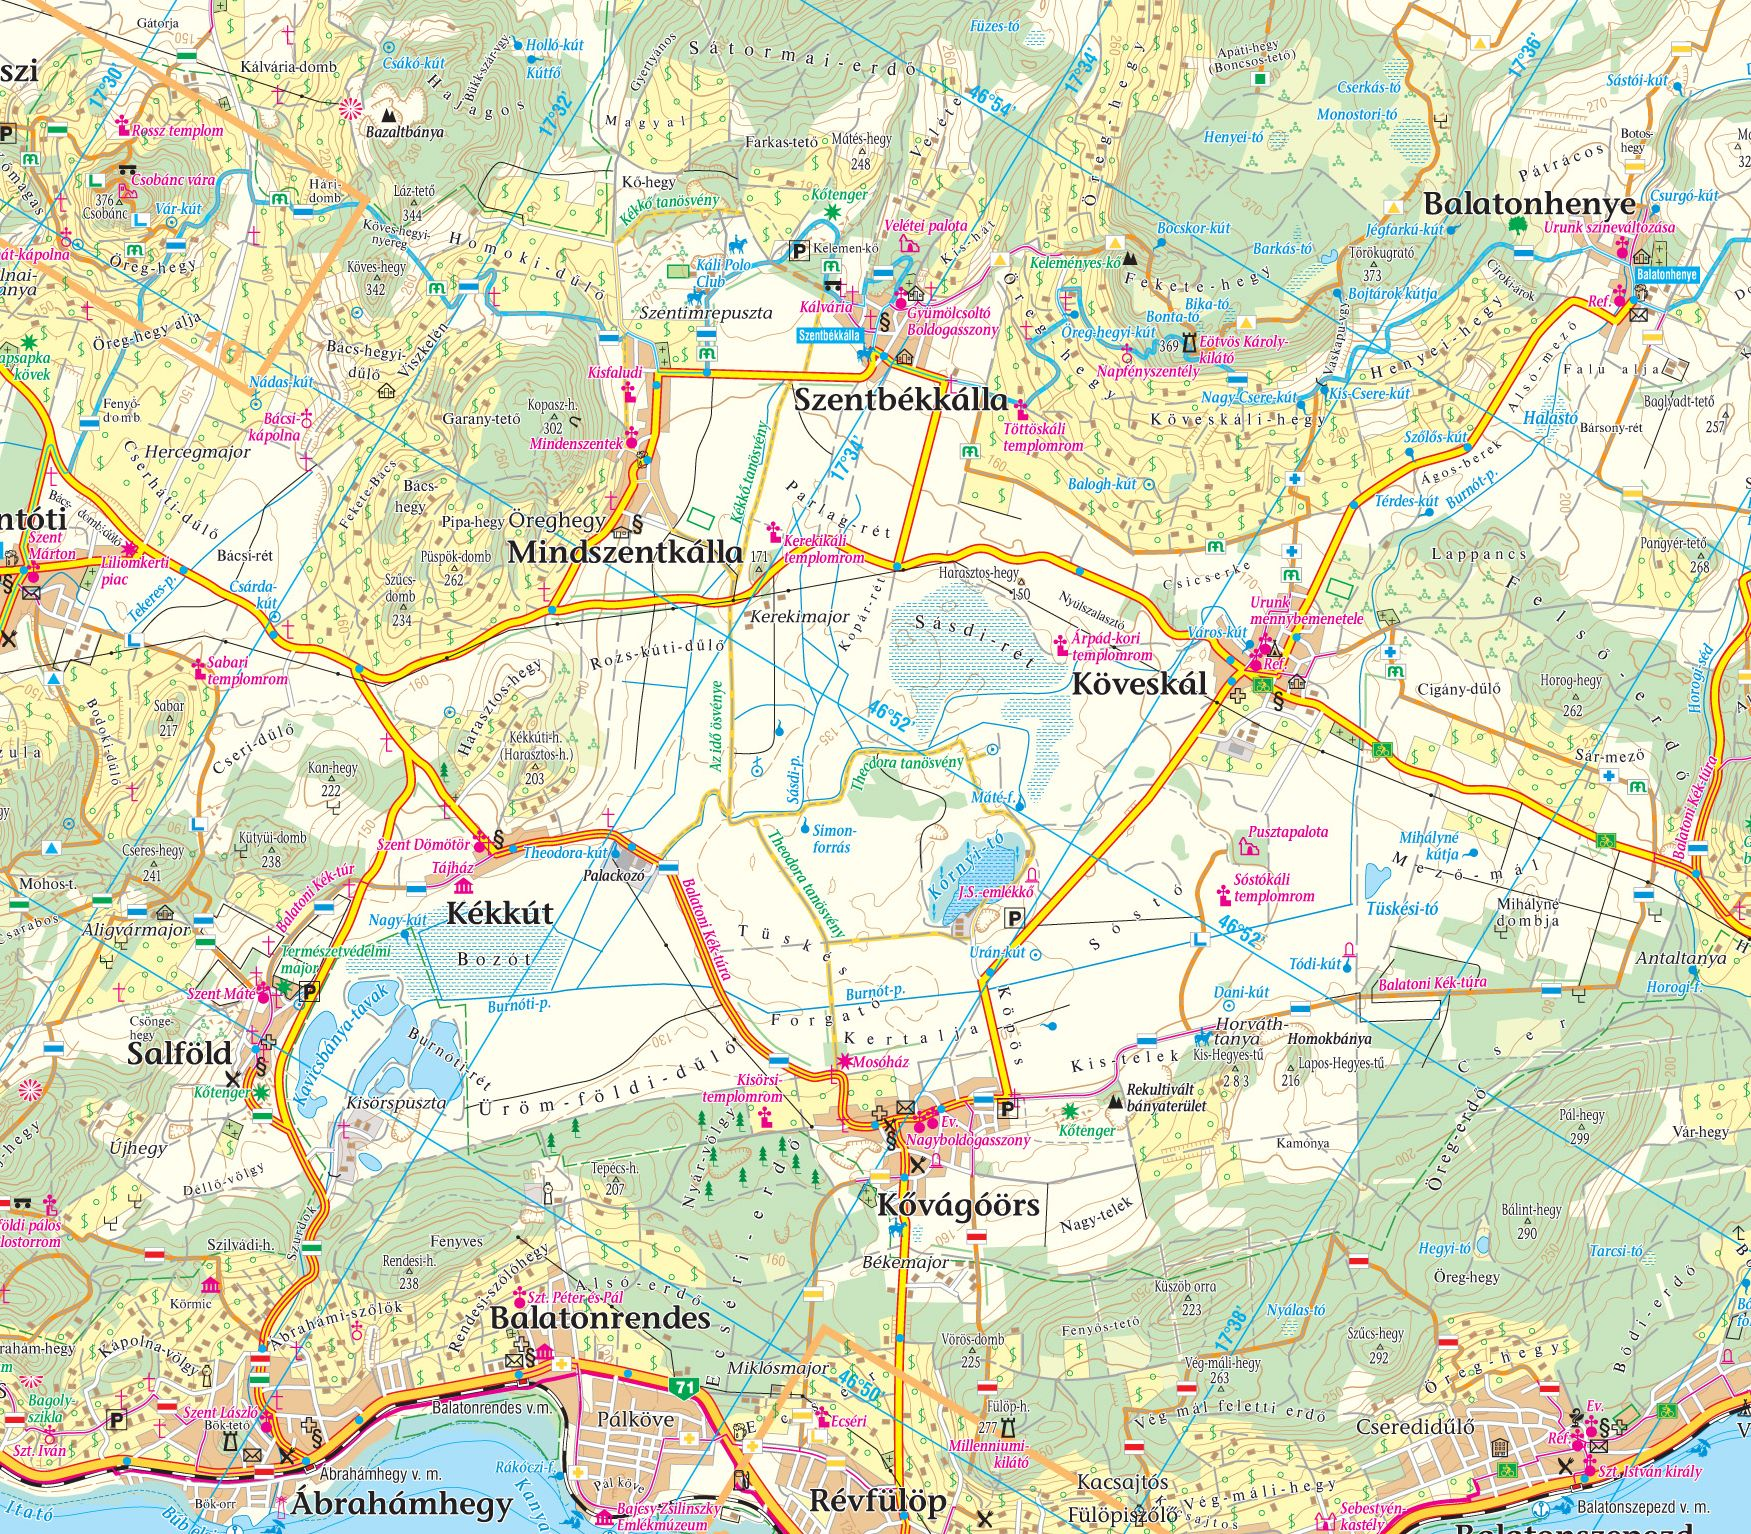 Detailed GPS compatible Balaton tourist-biking map for mobile devices can be purchased on PDFMaps website